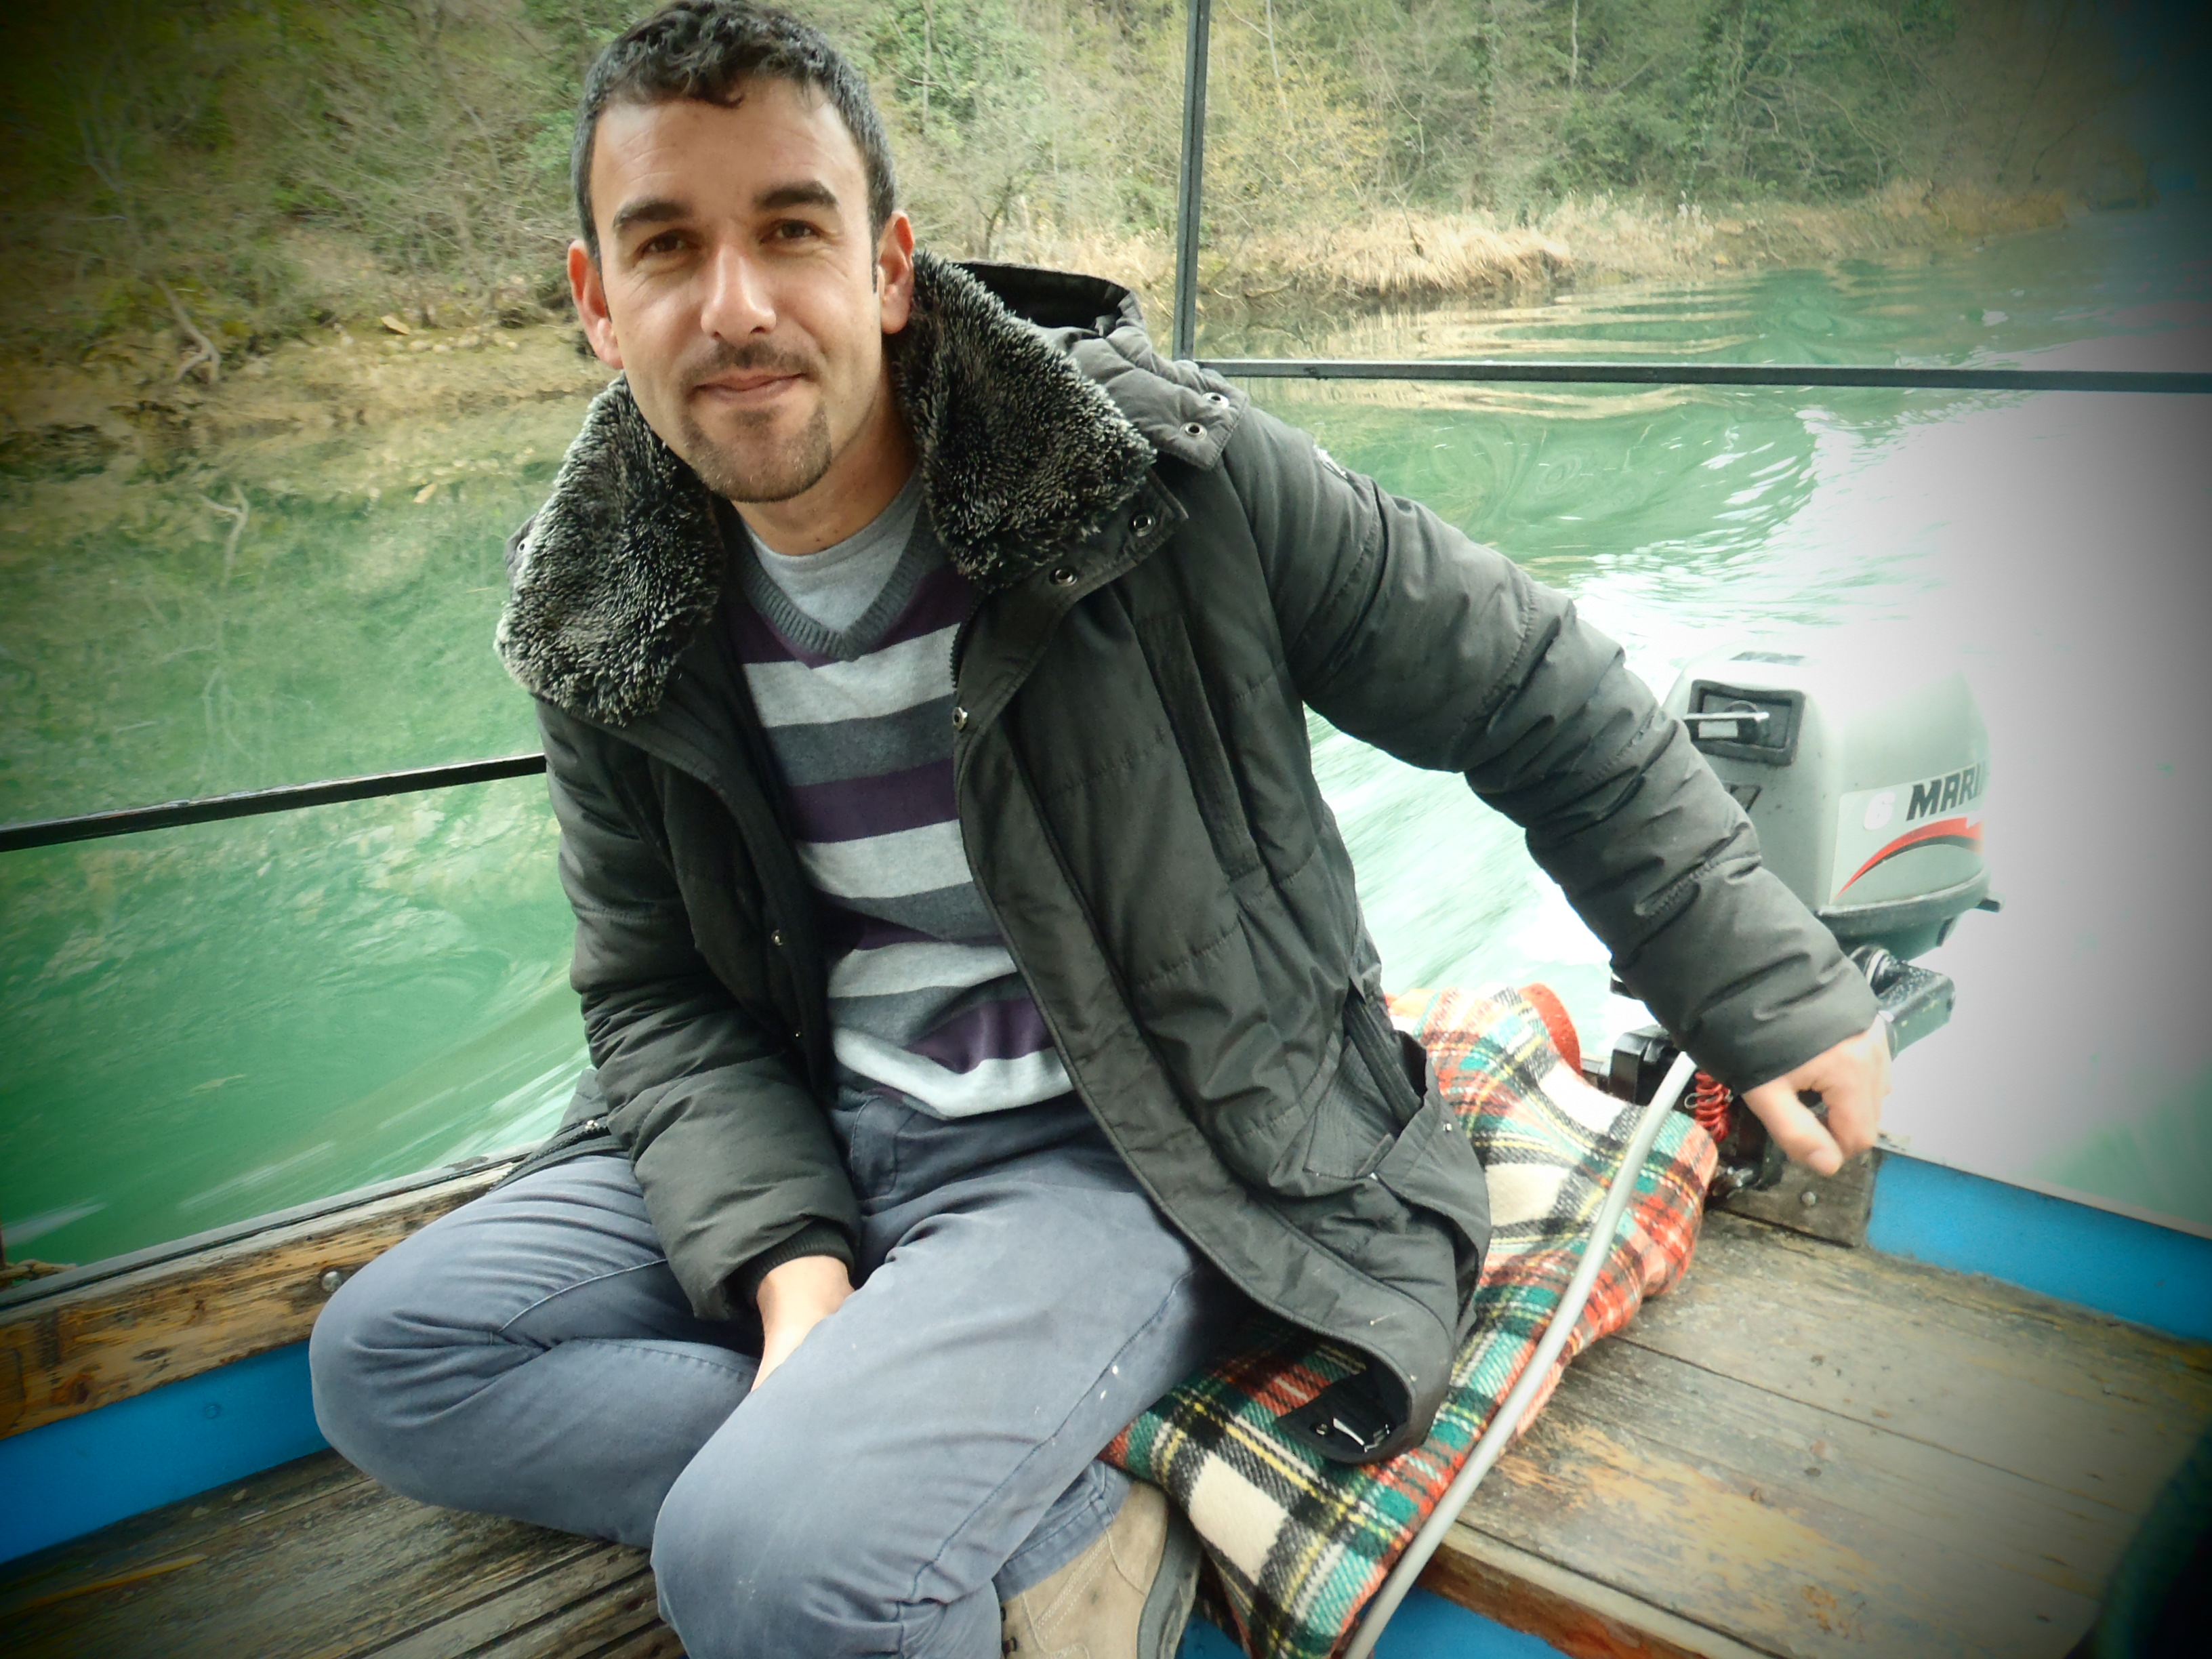 Boat Captain, Amet; Matka, Republic of Macedonia; 2013